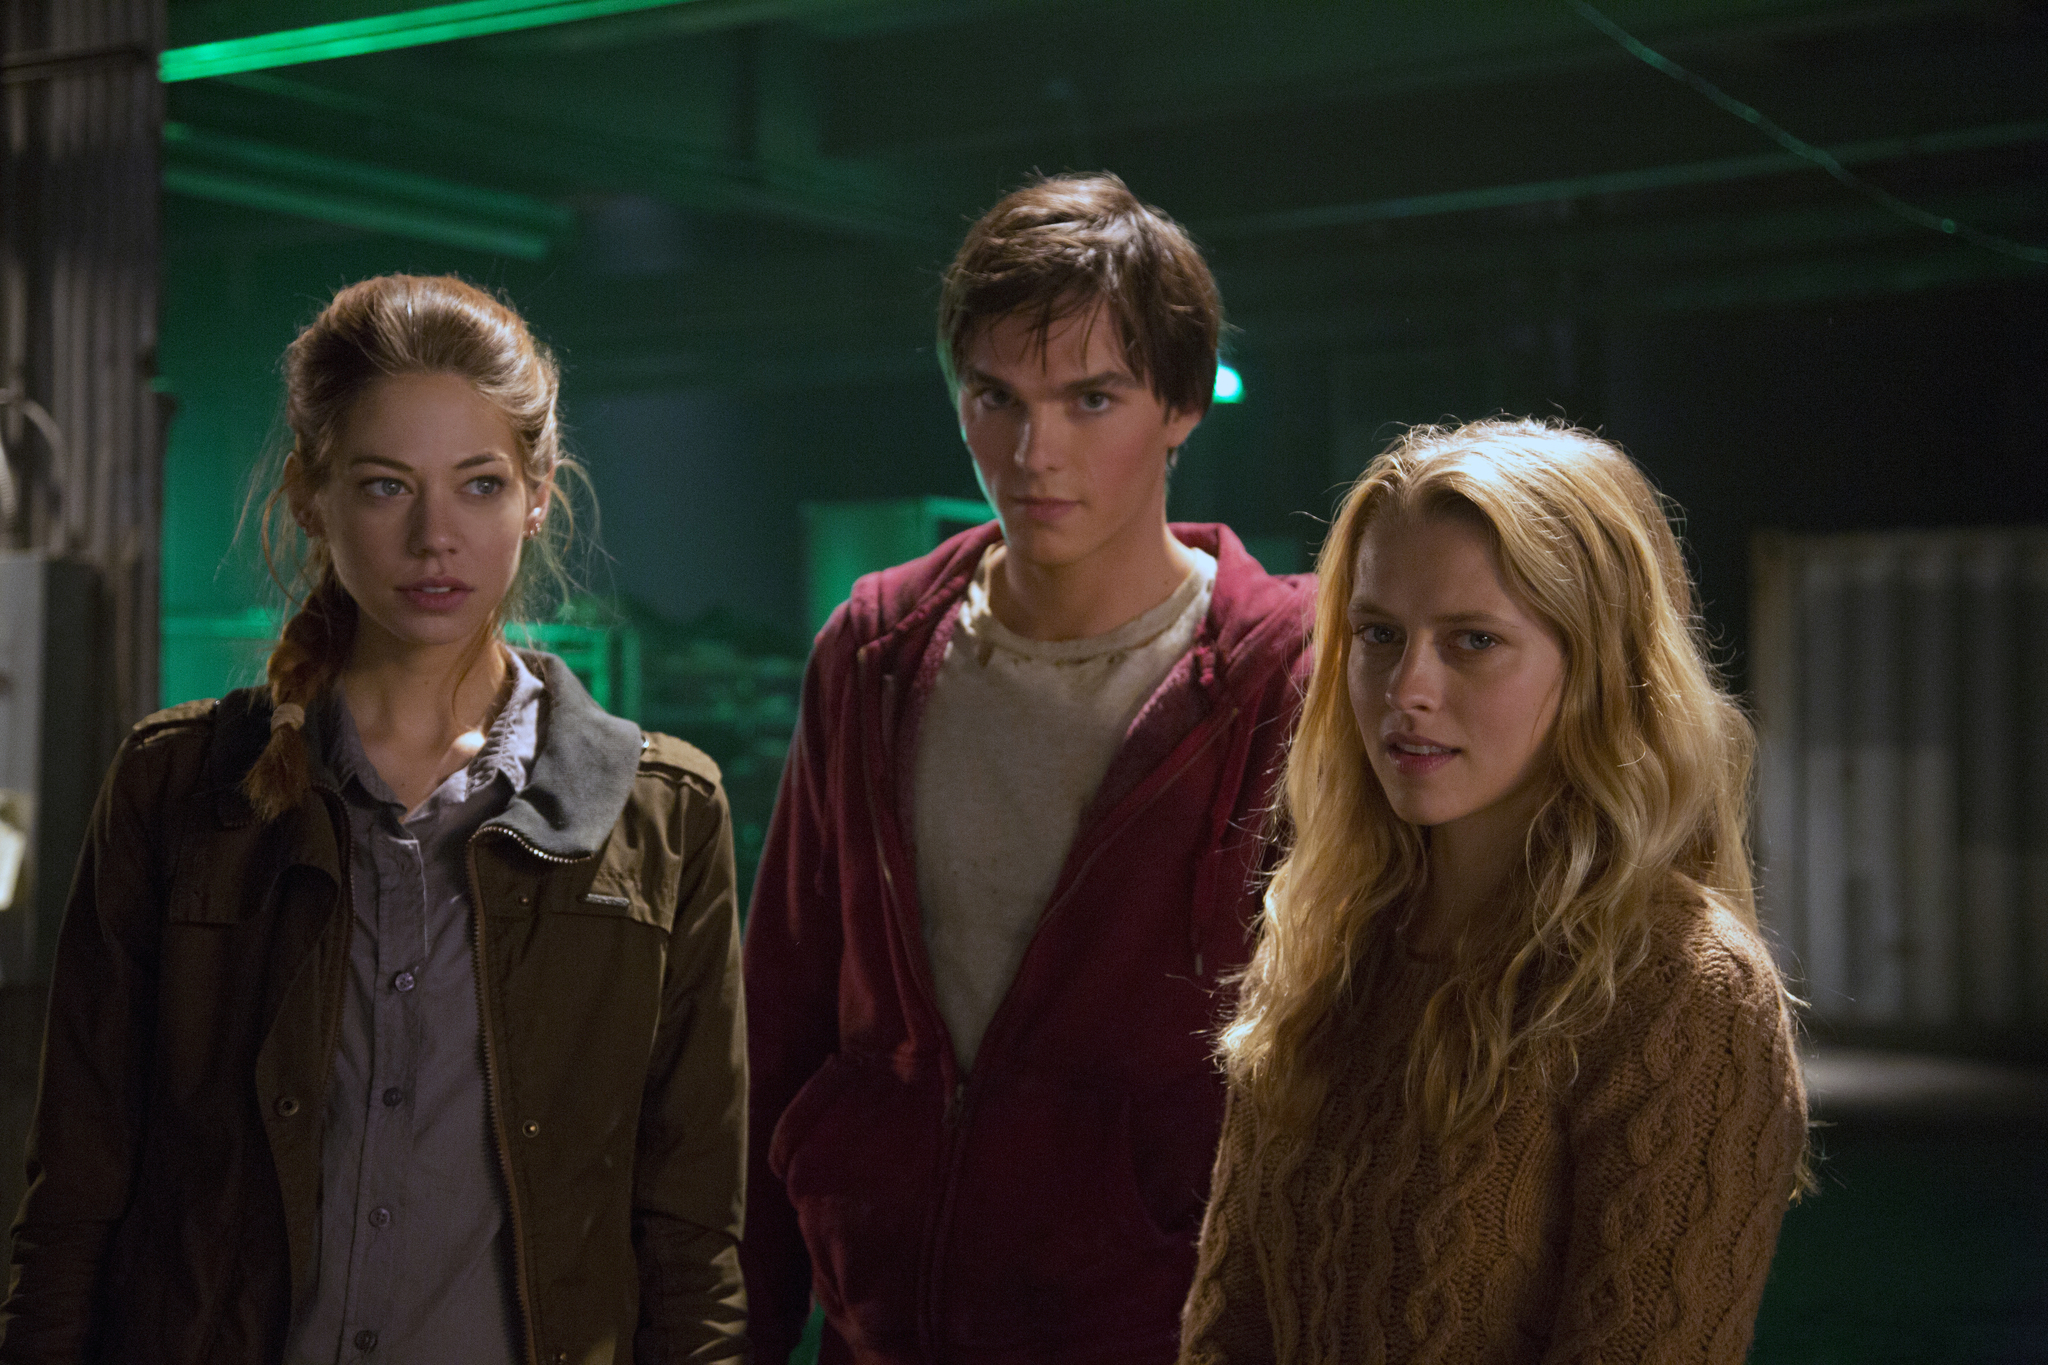 Nicholas Hoult, Teresa Palmer, and Analeigh Tipton in Warm Bodies (2013)